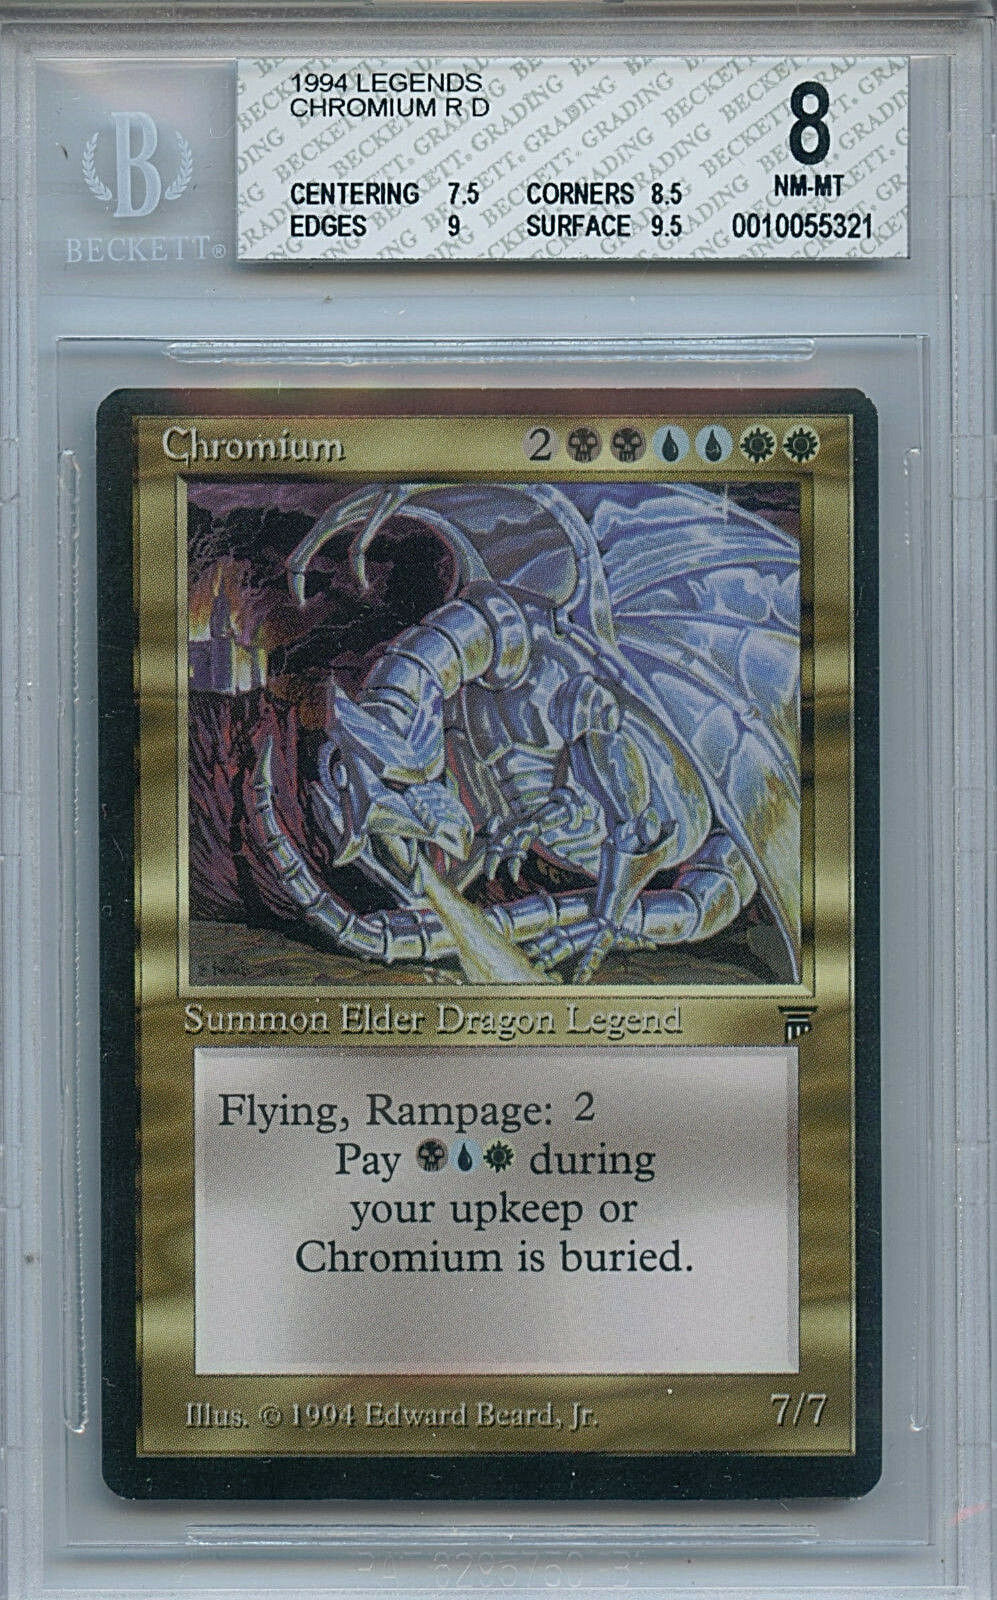 Mtg Legends chromium BGS 8.0 nm - mtwtc Magic Coched 5321